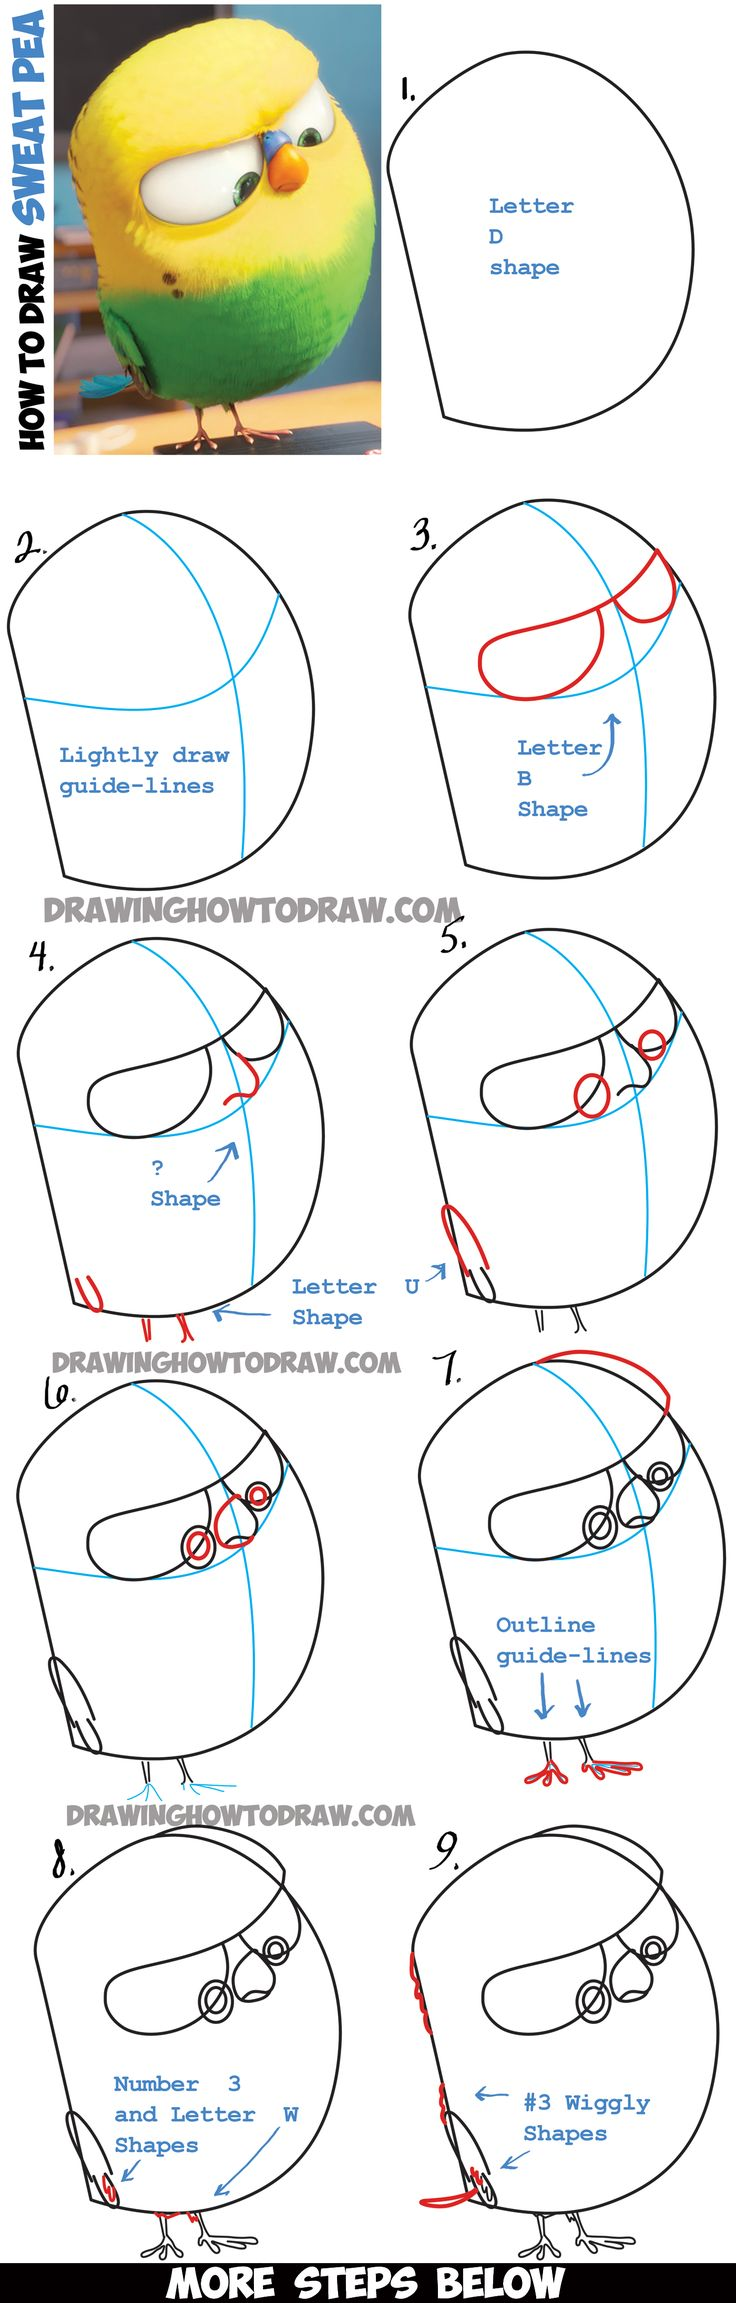 Best 25 how to learn drawing ideas on pinterest learn drawing learn how to draw sweet pea the bird from the secret life of pets easy robcynllc Image collections